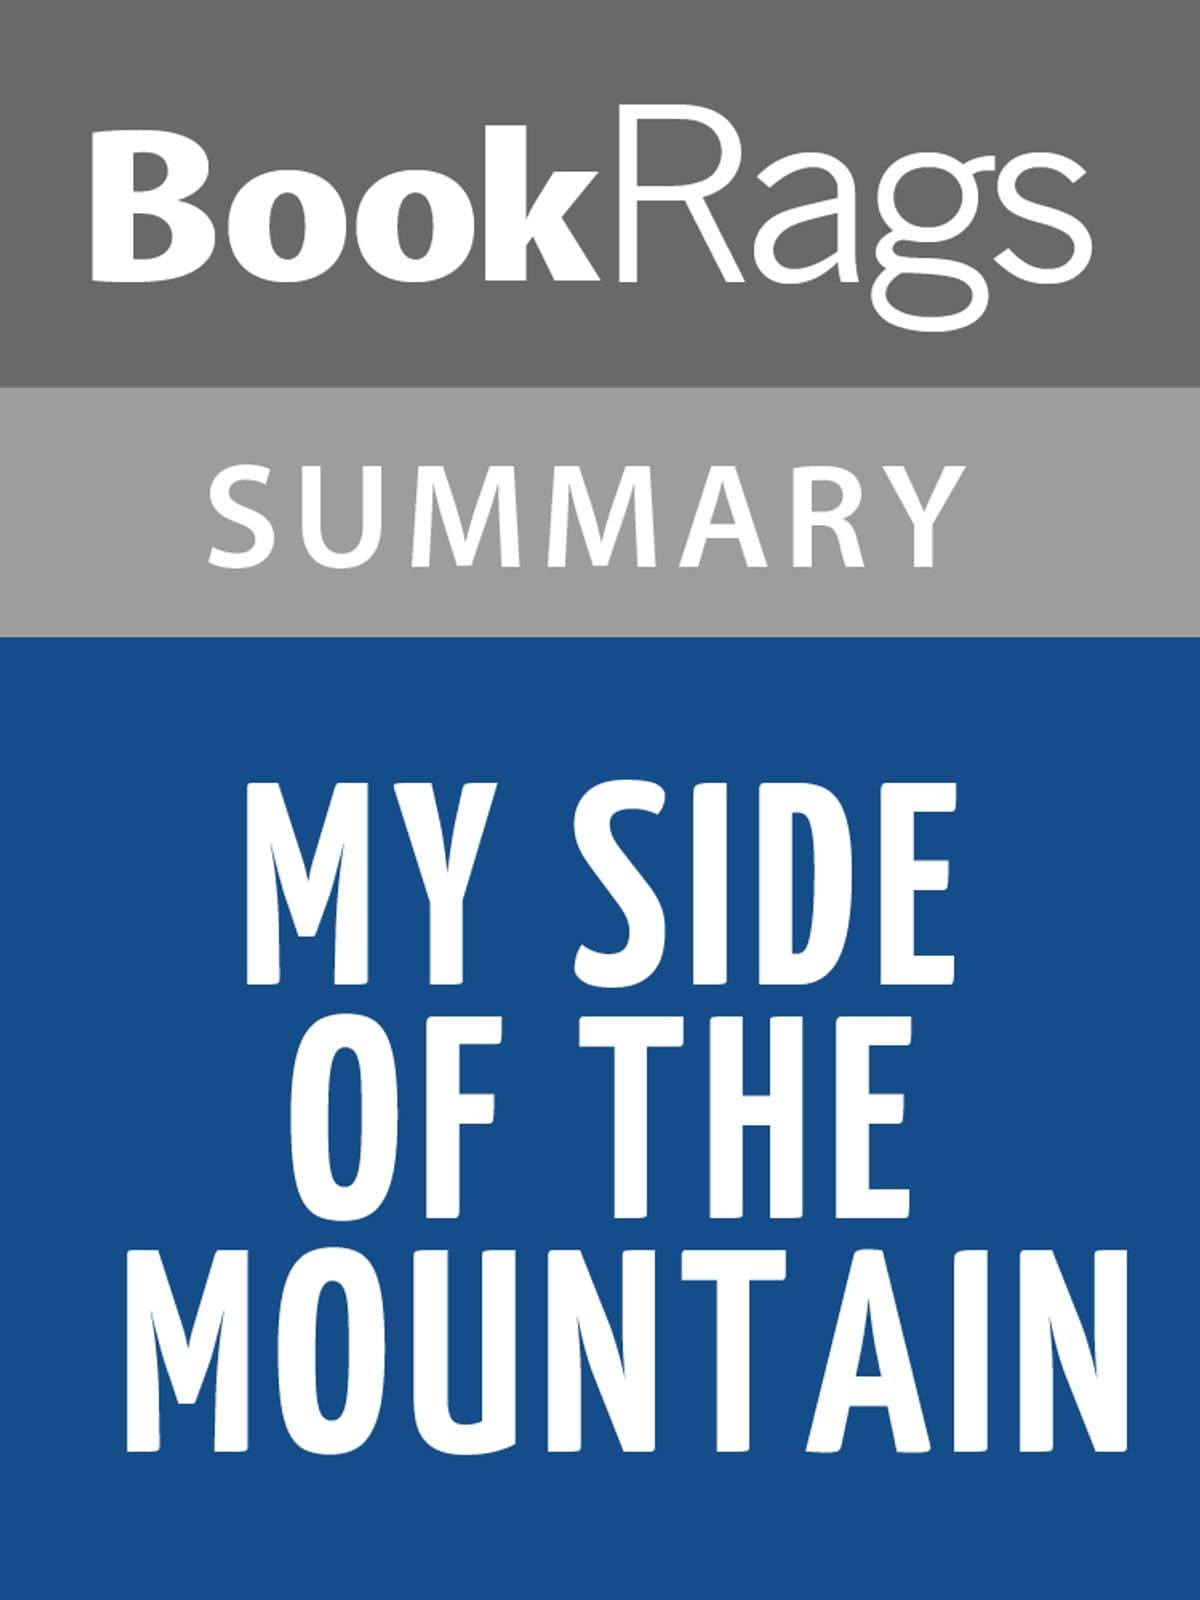 My side of the mountain by jean craighead george l summary study my side of the mountain by jean craighead george l summary study guide ebook by bookrags 1230000331838 rakuten kobo fandeluxe Document